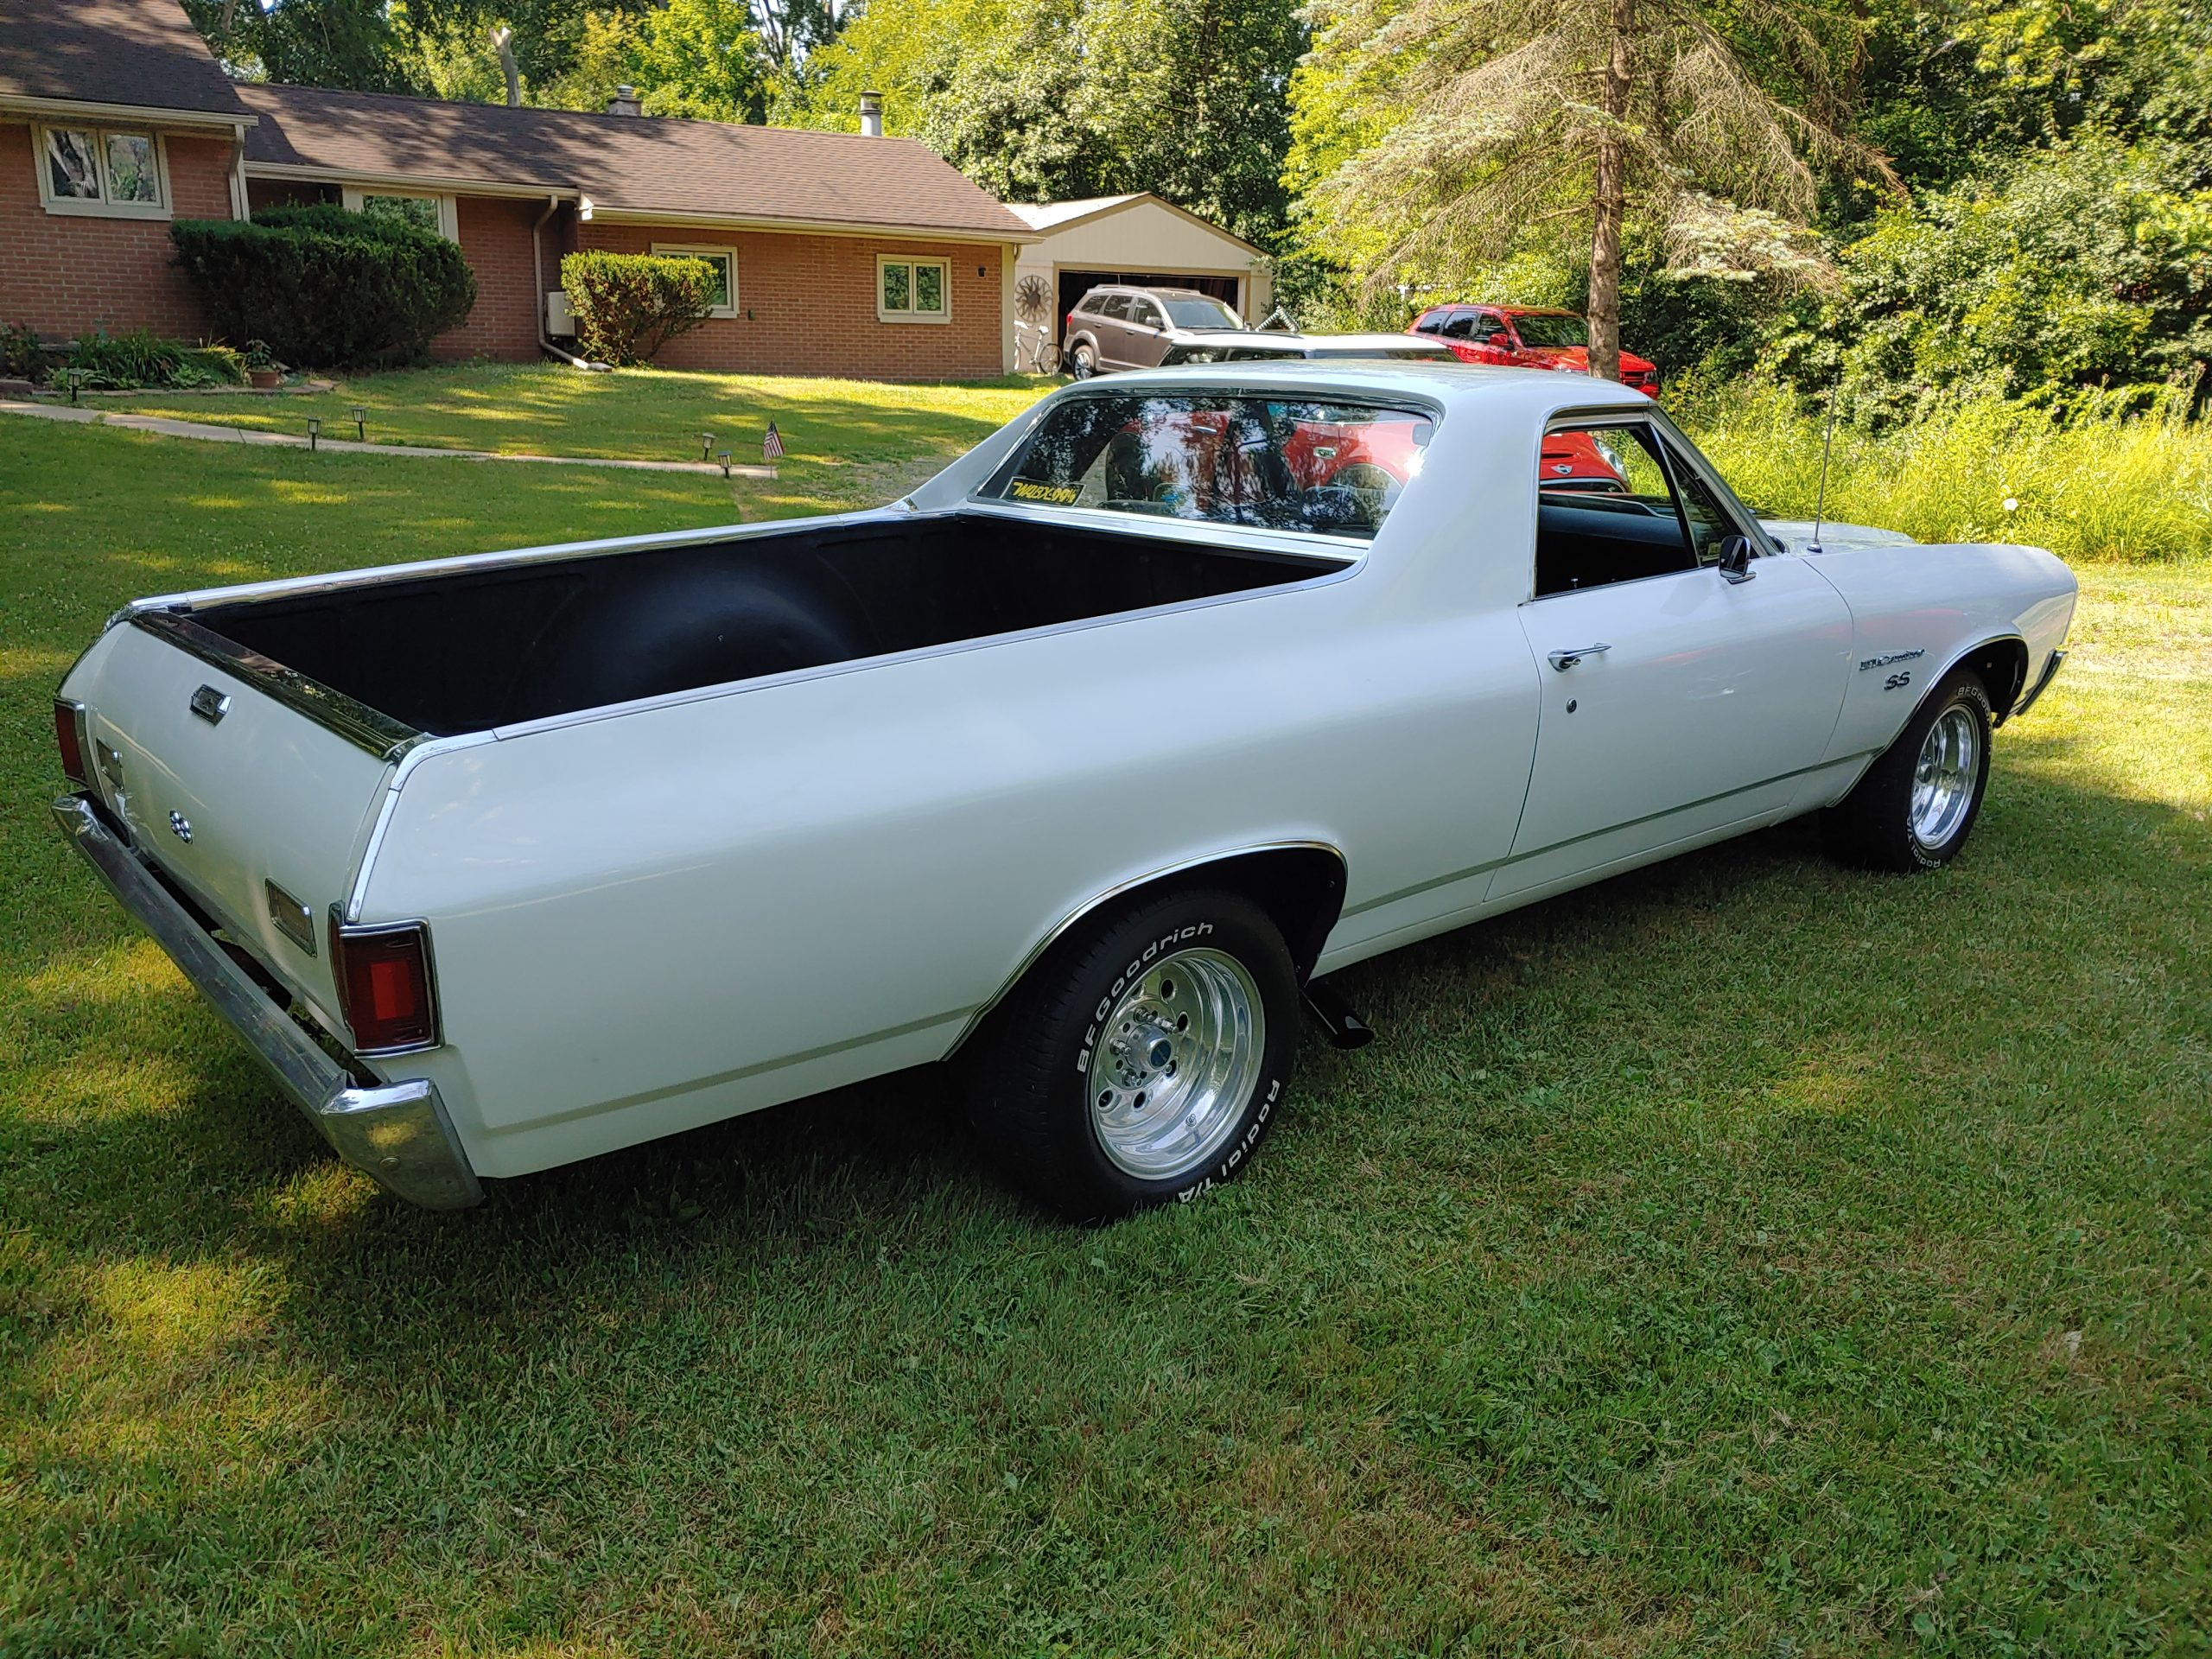 Video: 10 Questions with a Chevrolet El Camino Owner